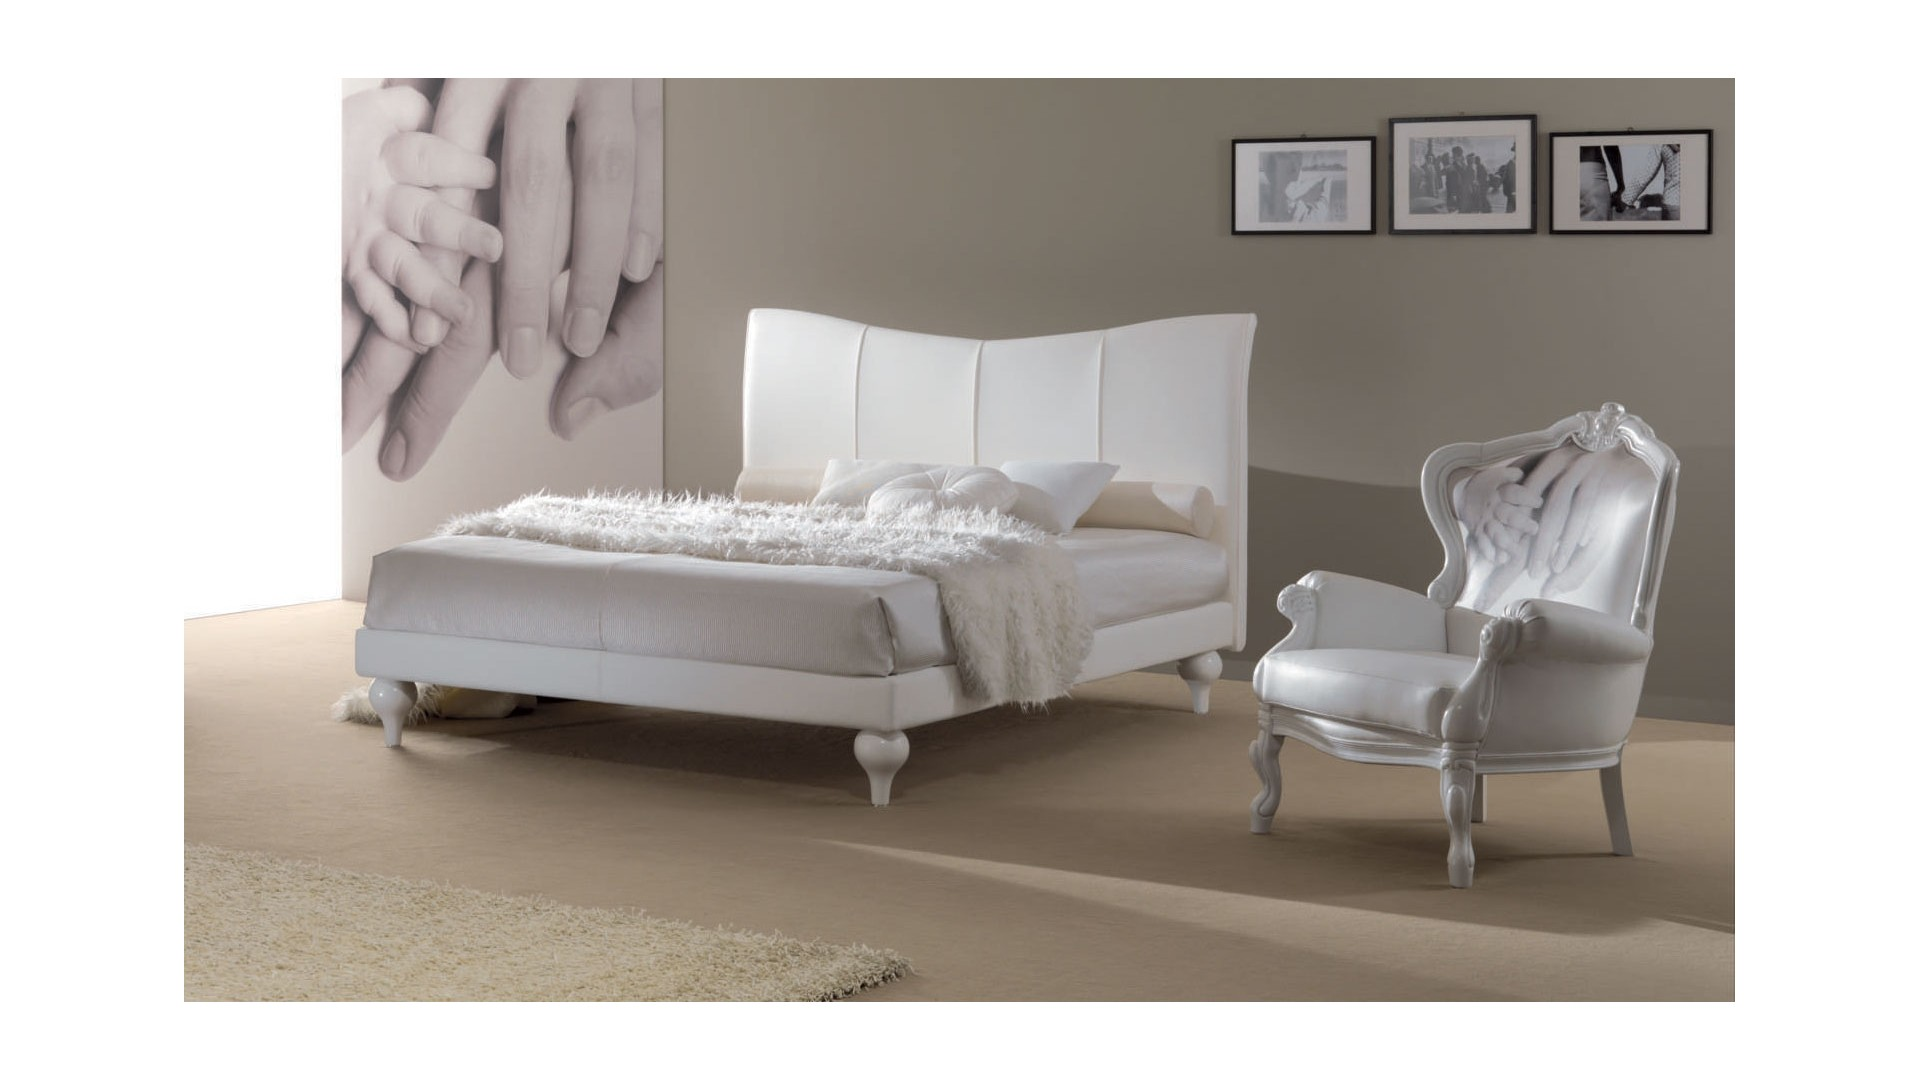 lit double margaret avec un couchage de 160x190cm piermaria so nuit. Black Bedroom Furniture Sets. Home Design Ideas